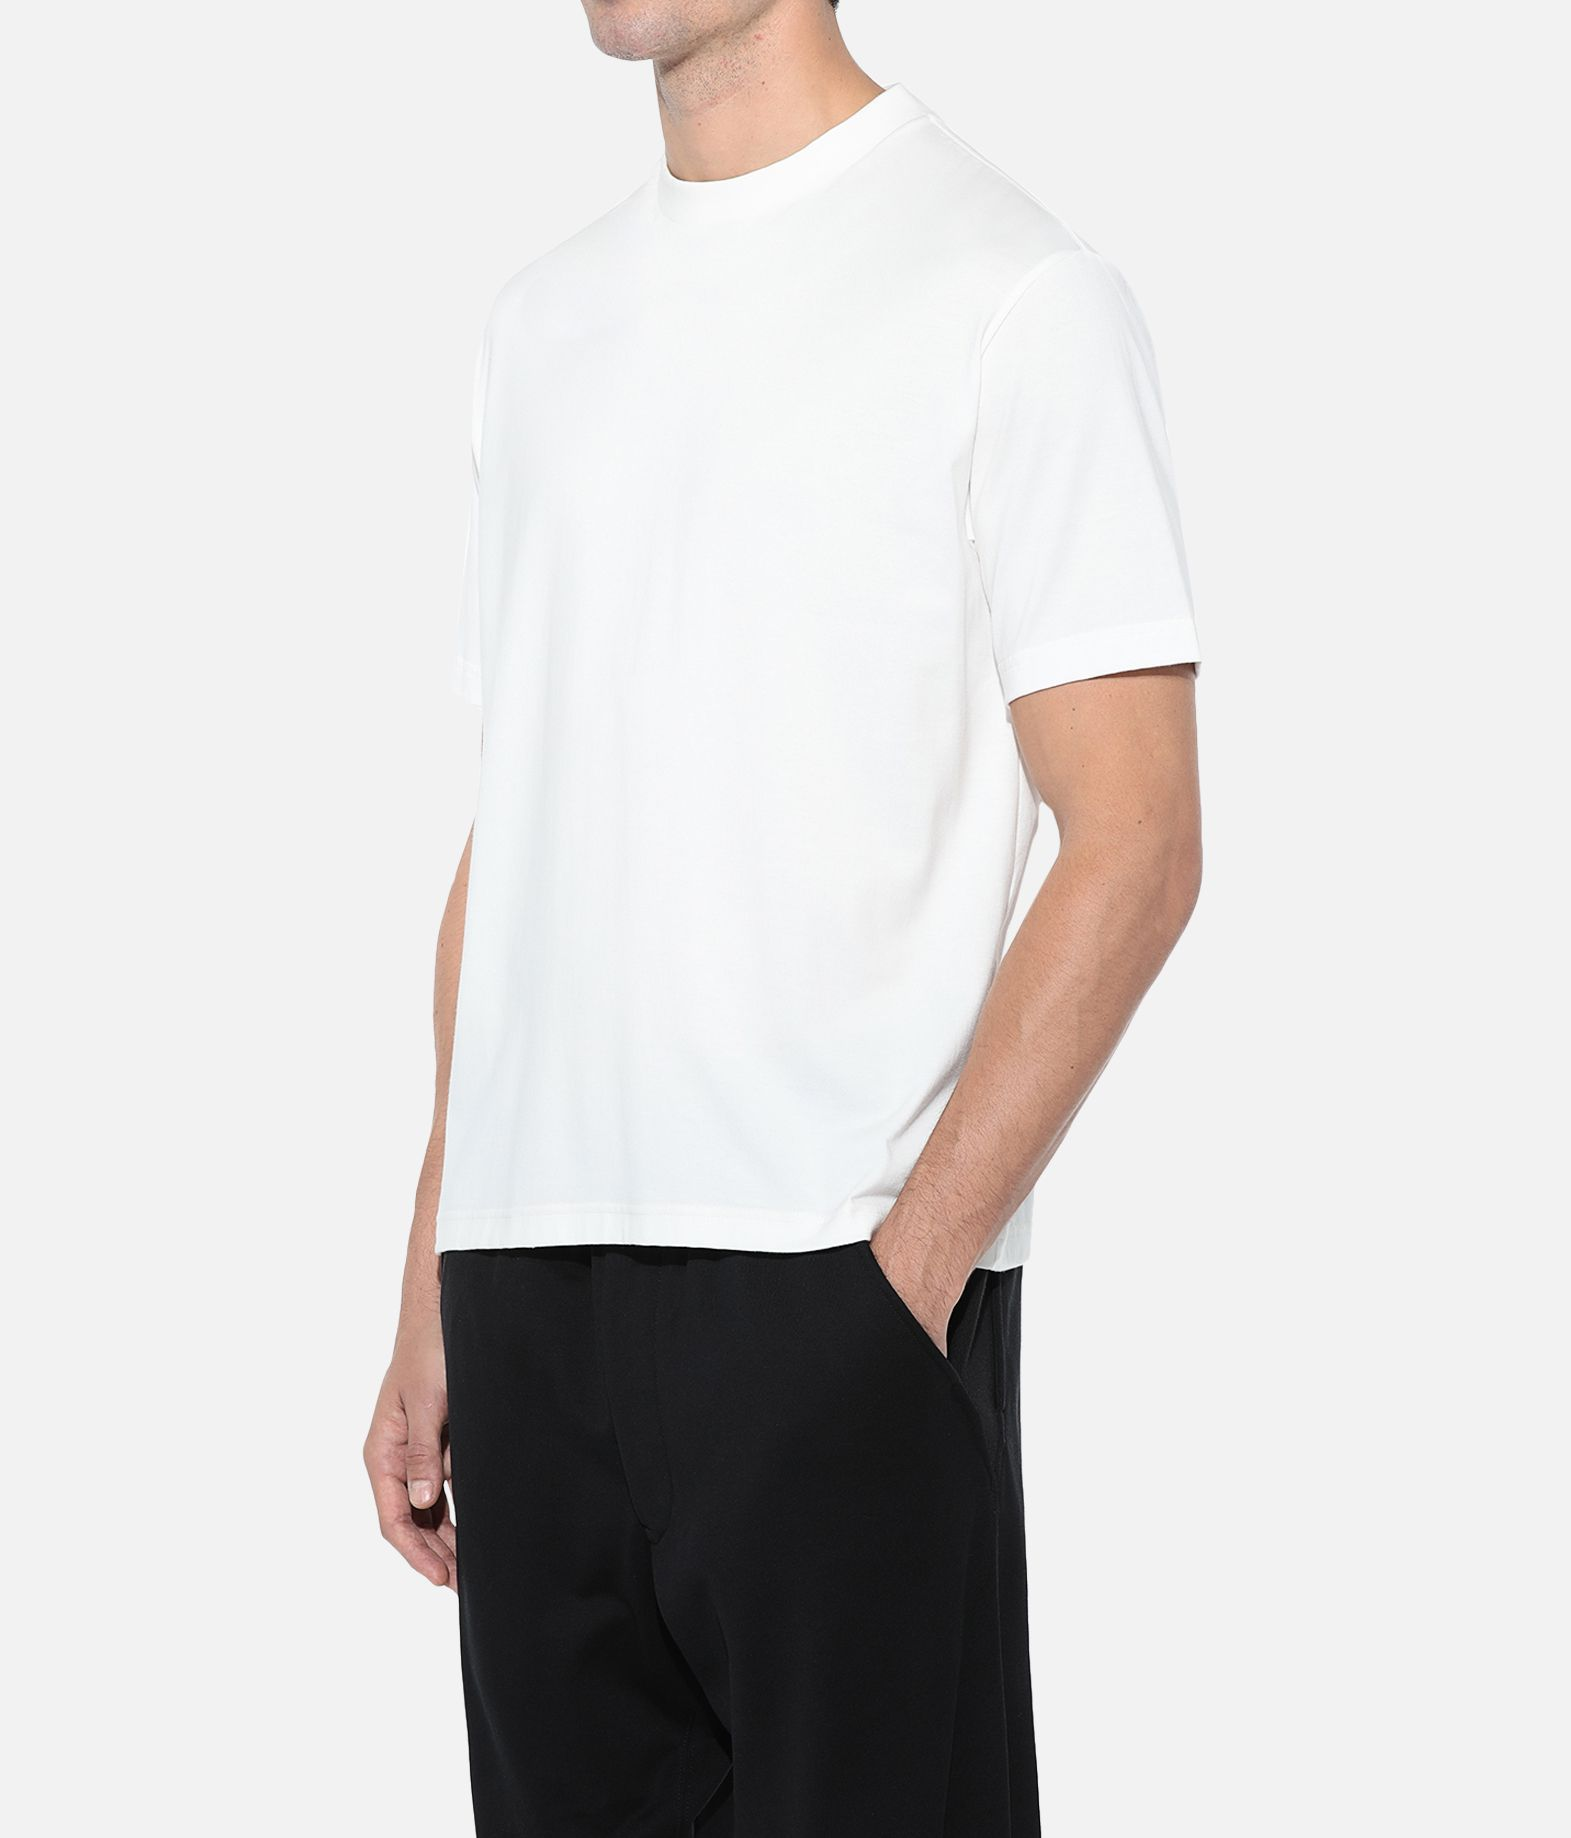 Y-3 Y-3 Signature Graphic Tee Short sleeve t-shirt Man e